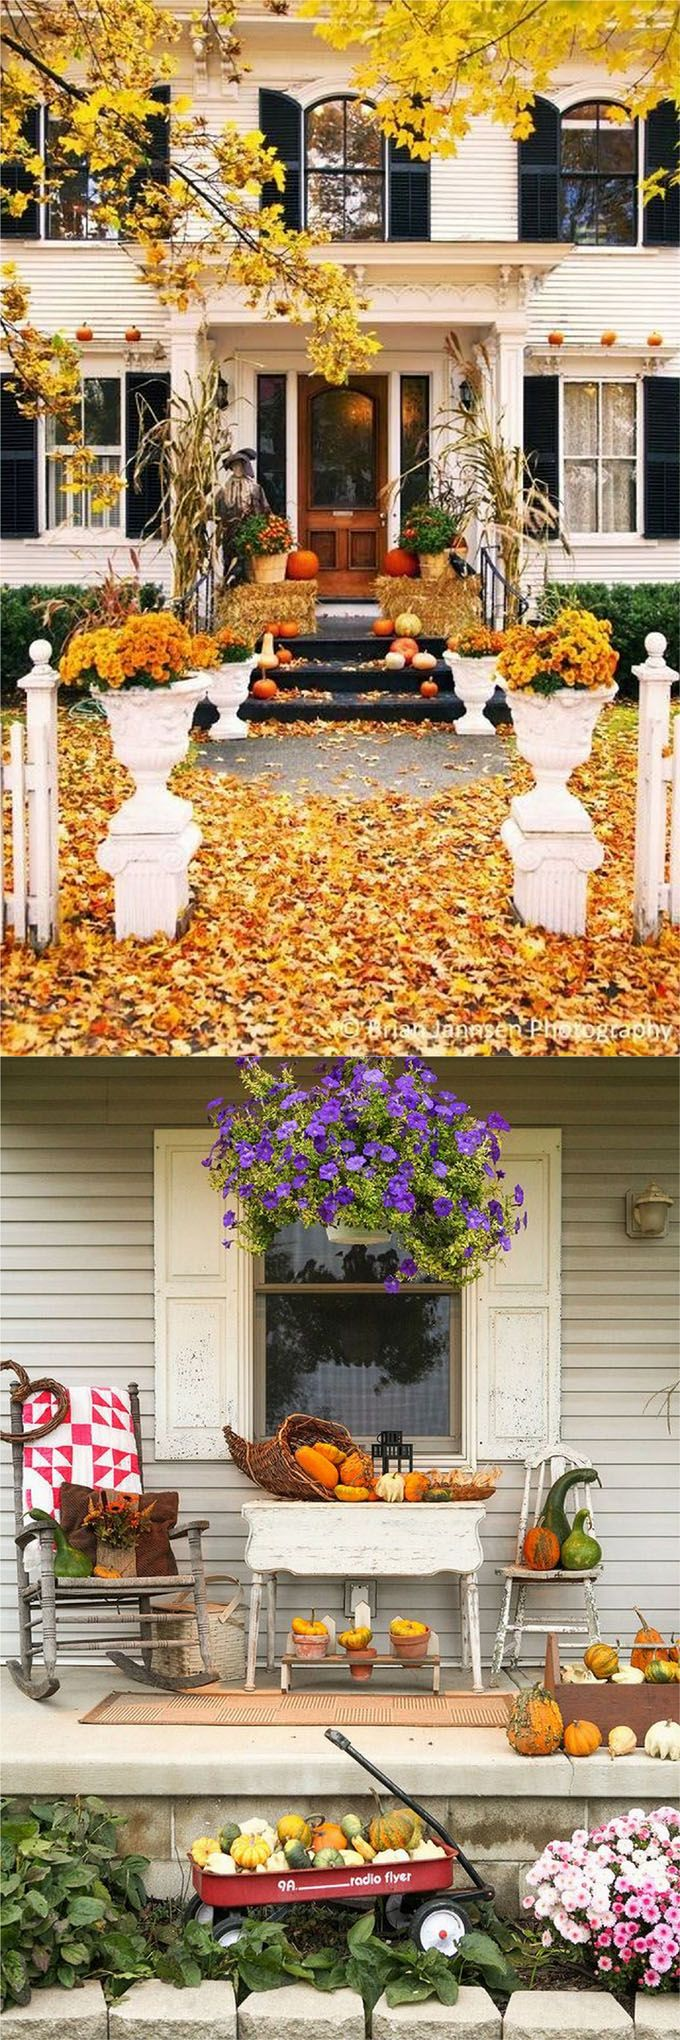 25 splendid DIY fall decorations for your